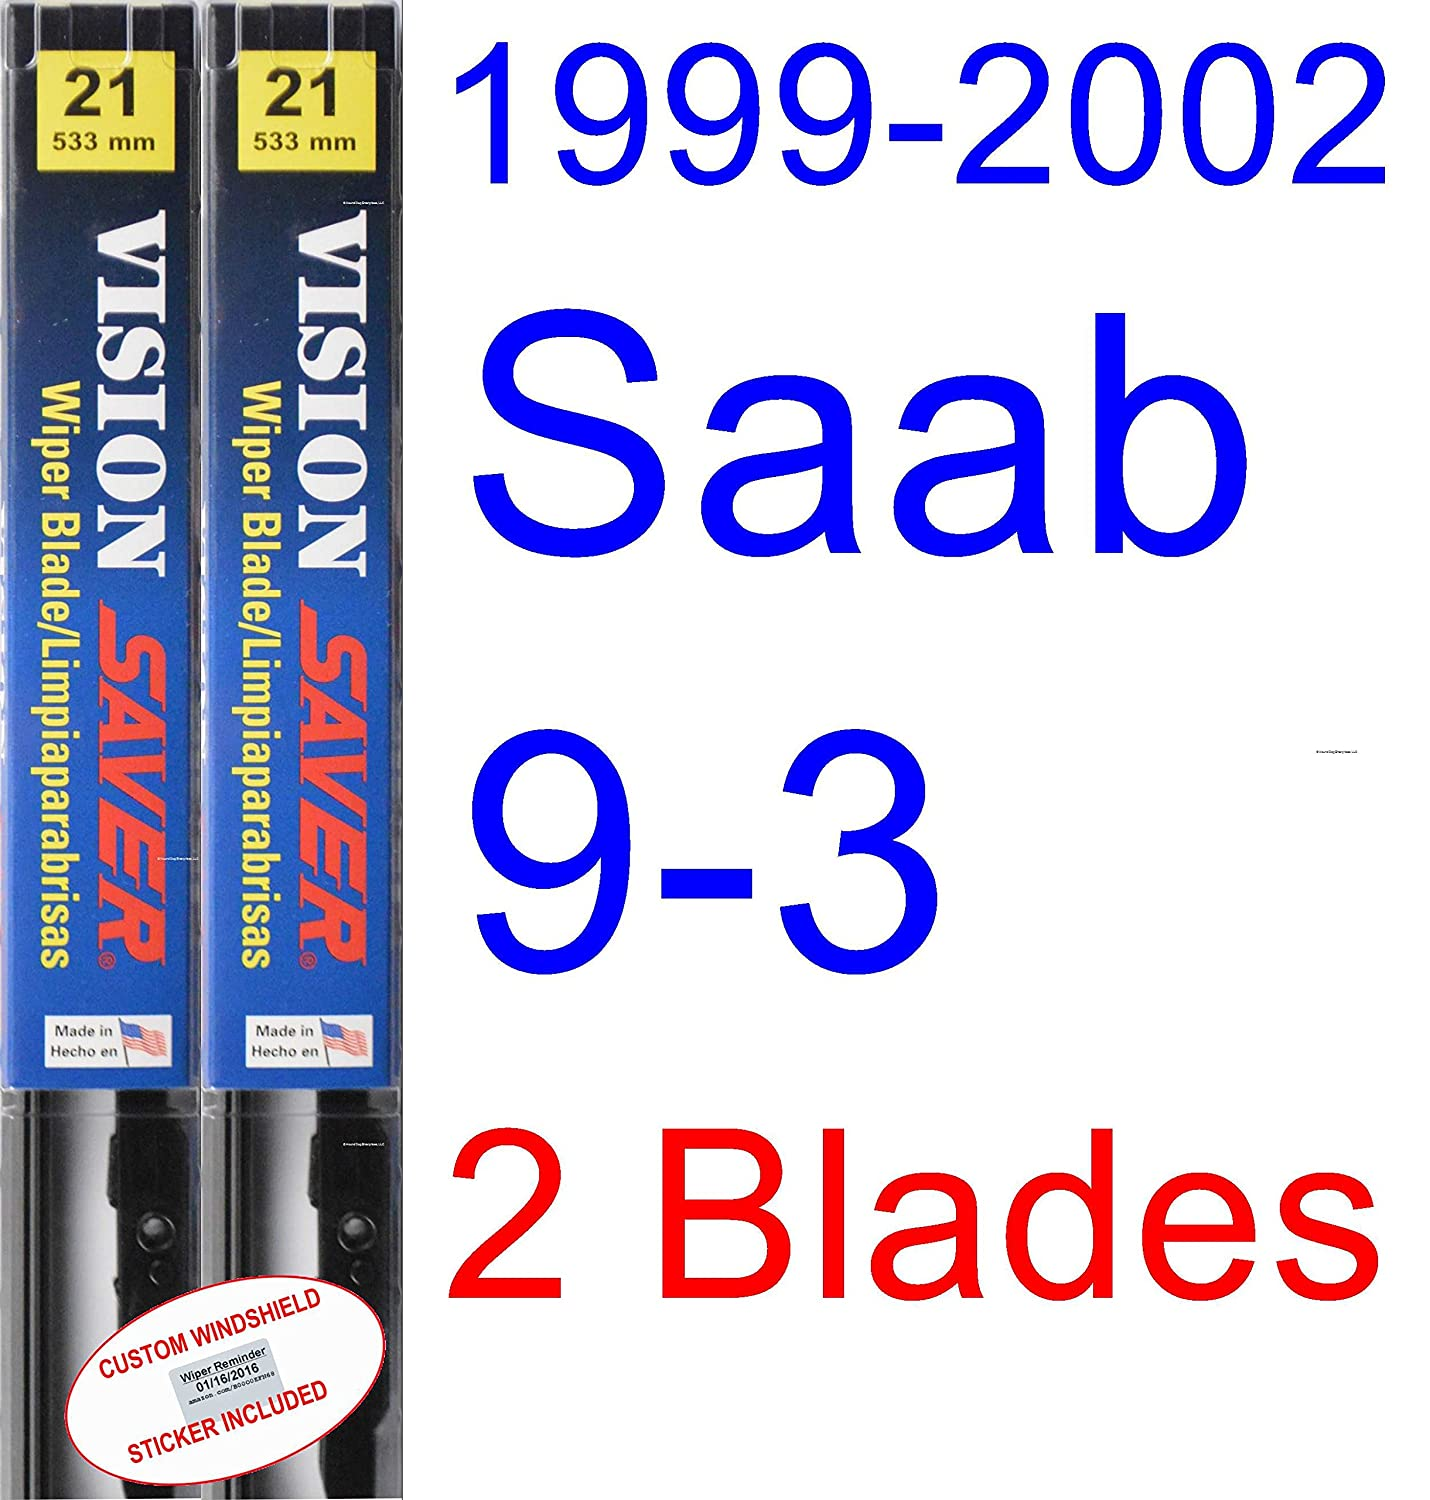 Amazon.com: 1999-2002 Saab 9-3 Wiper Blade (Driver) (Saver Automotive Products-Vision Saver) (2000,2001): Automotive